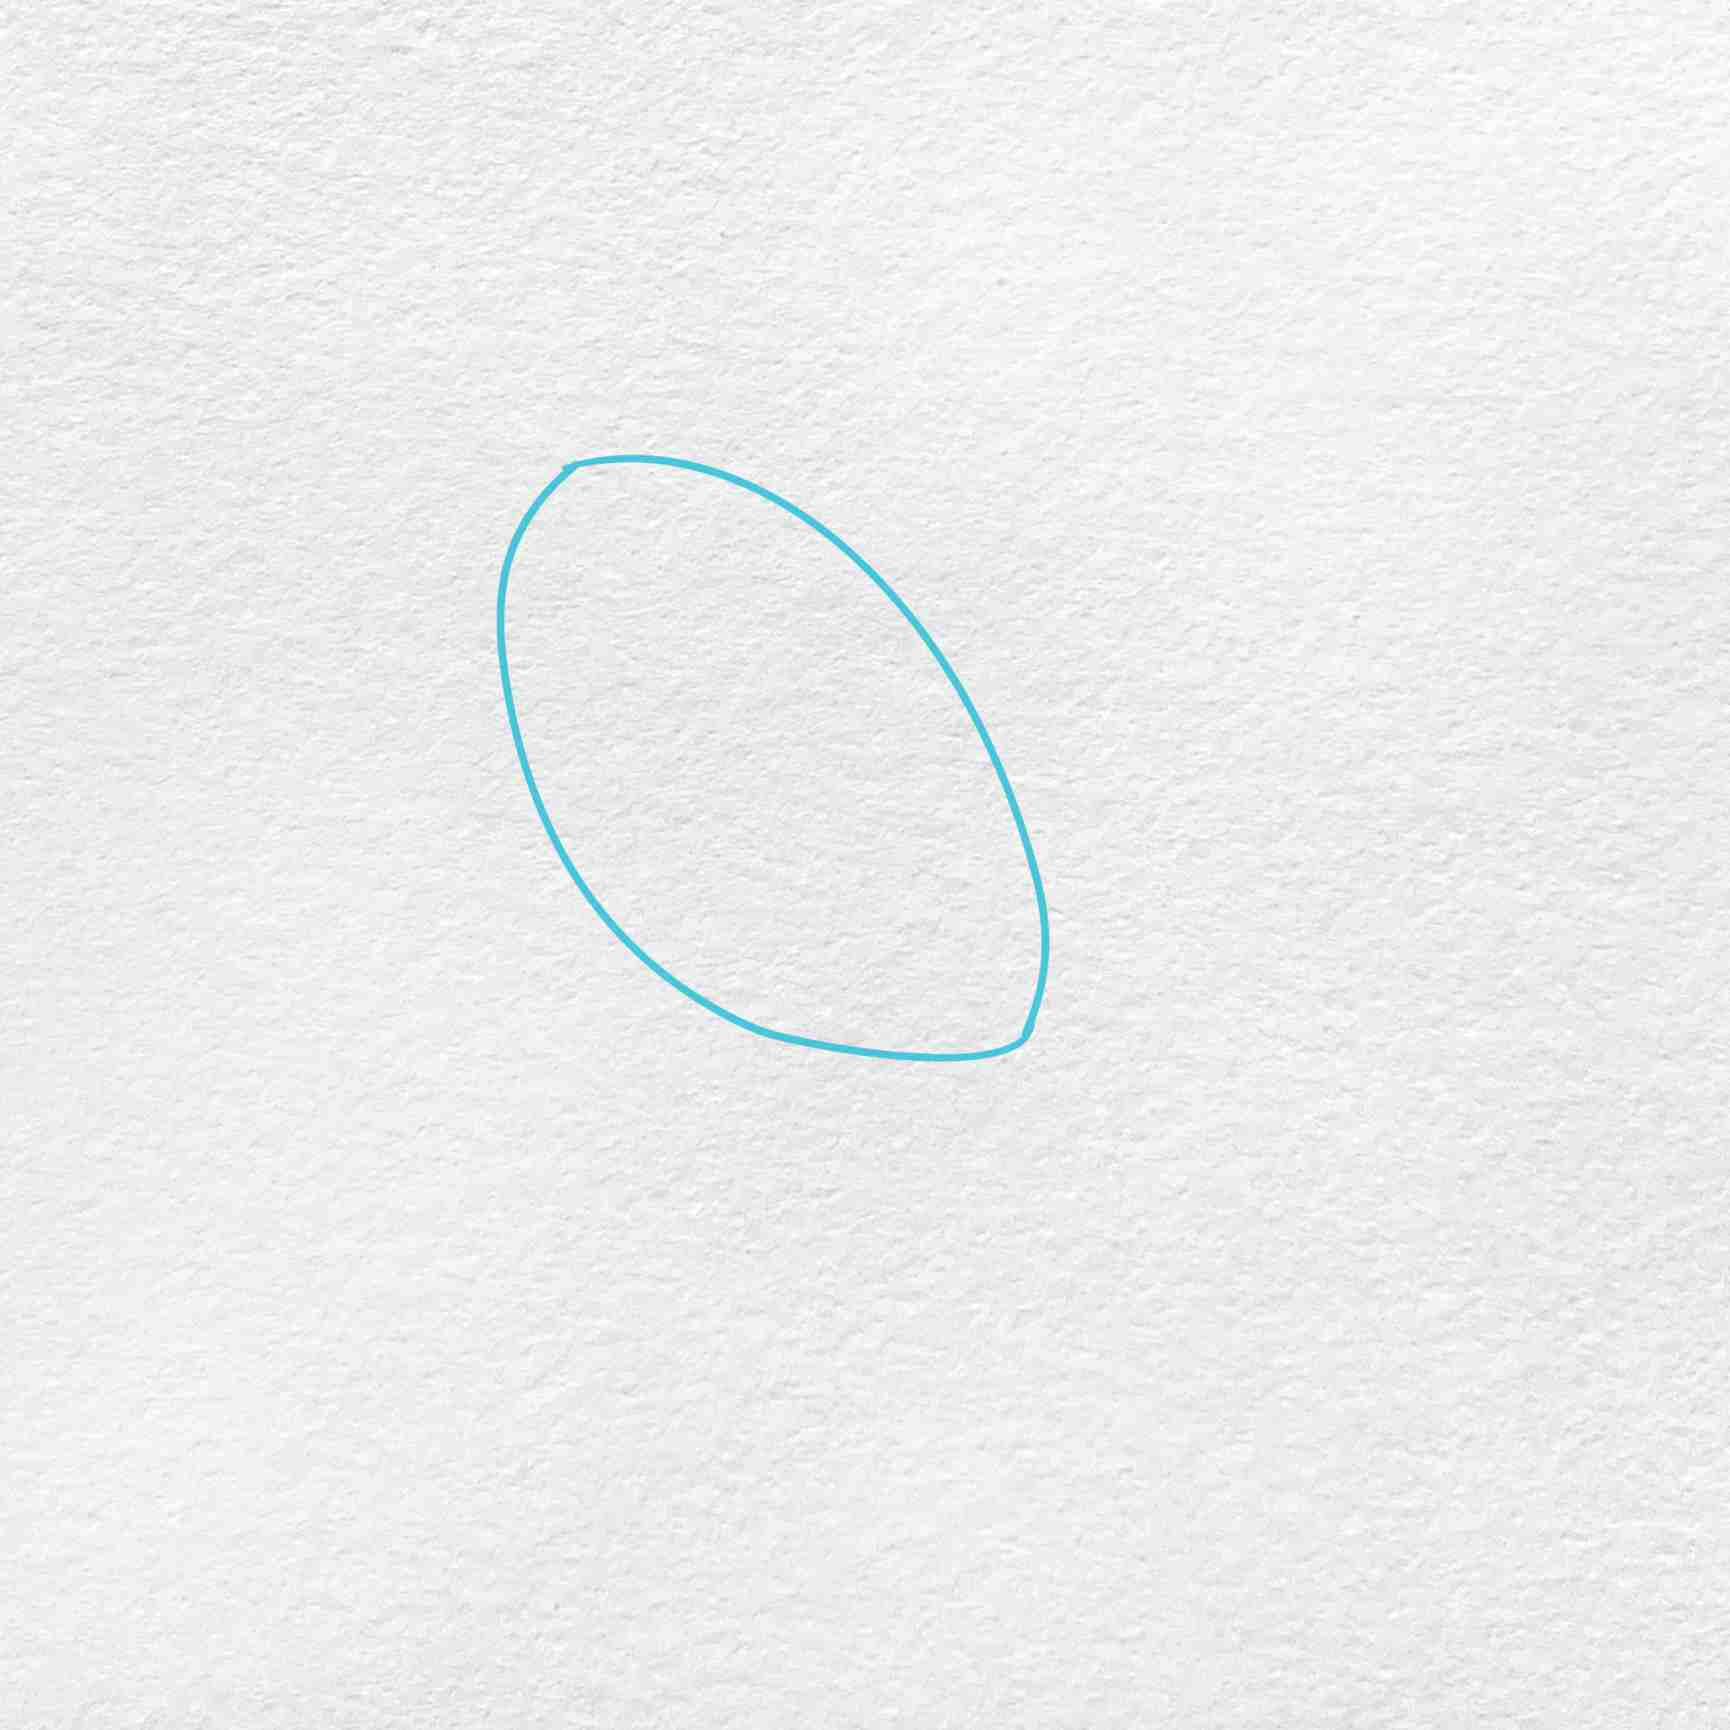 How To Draw A Robin: Step 1